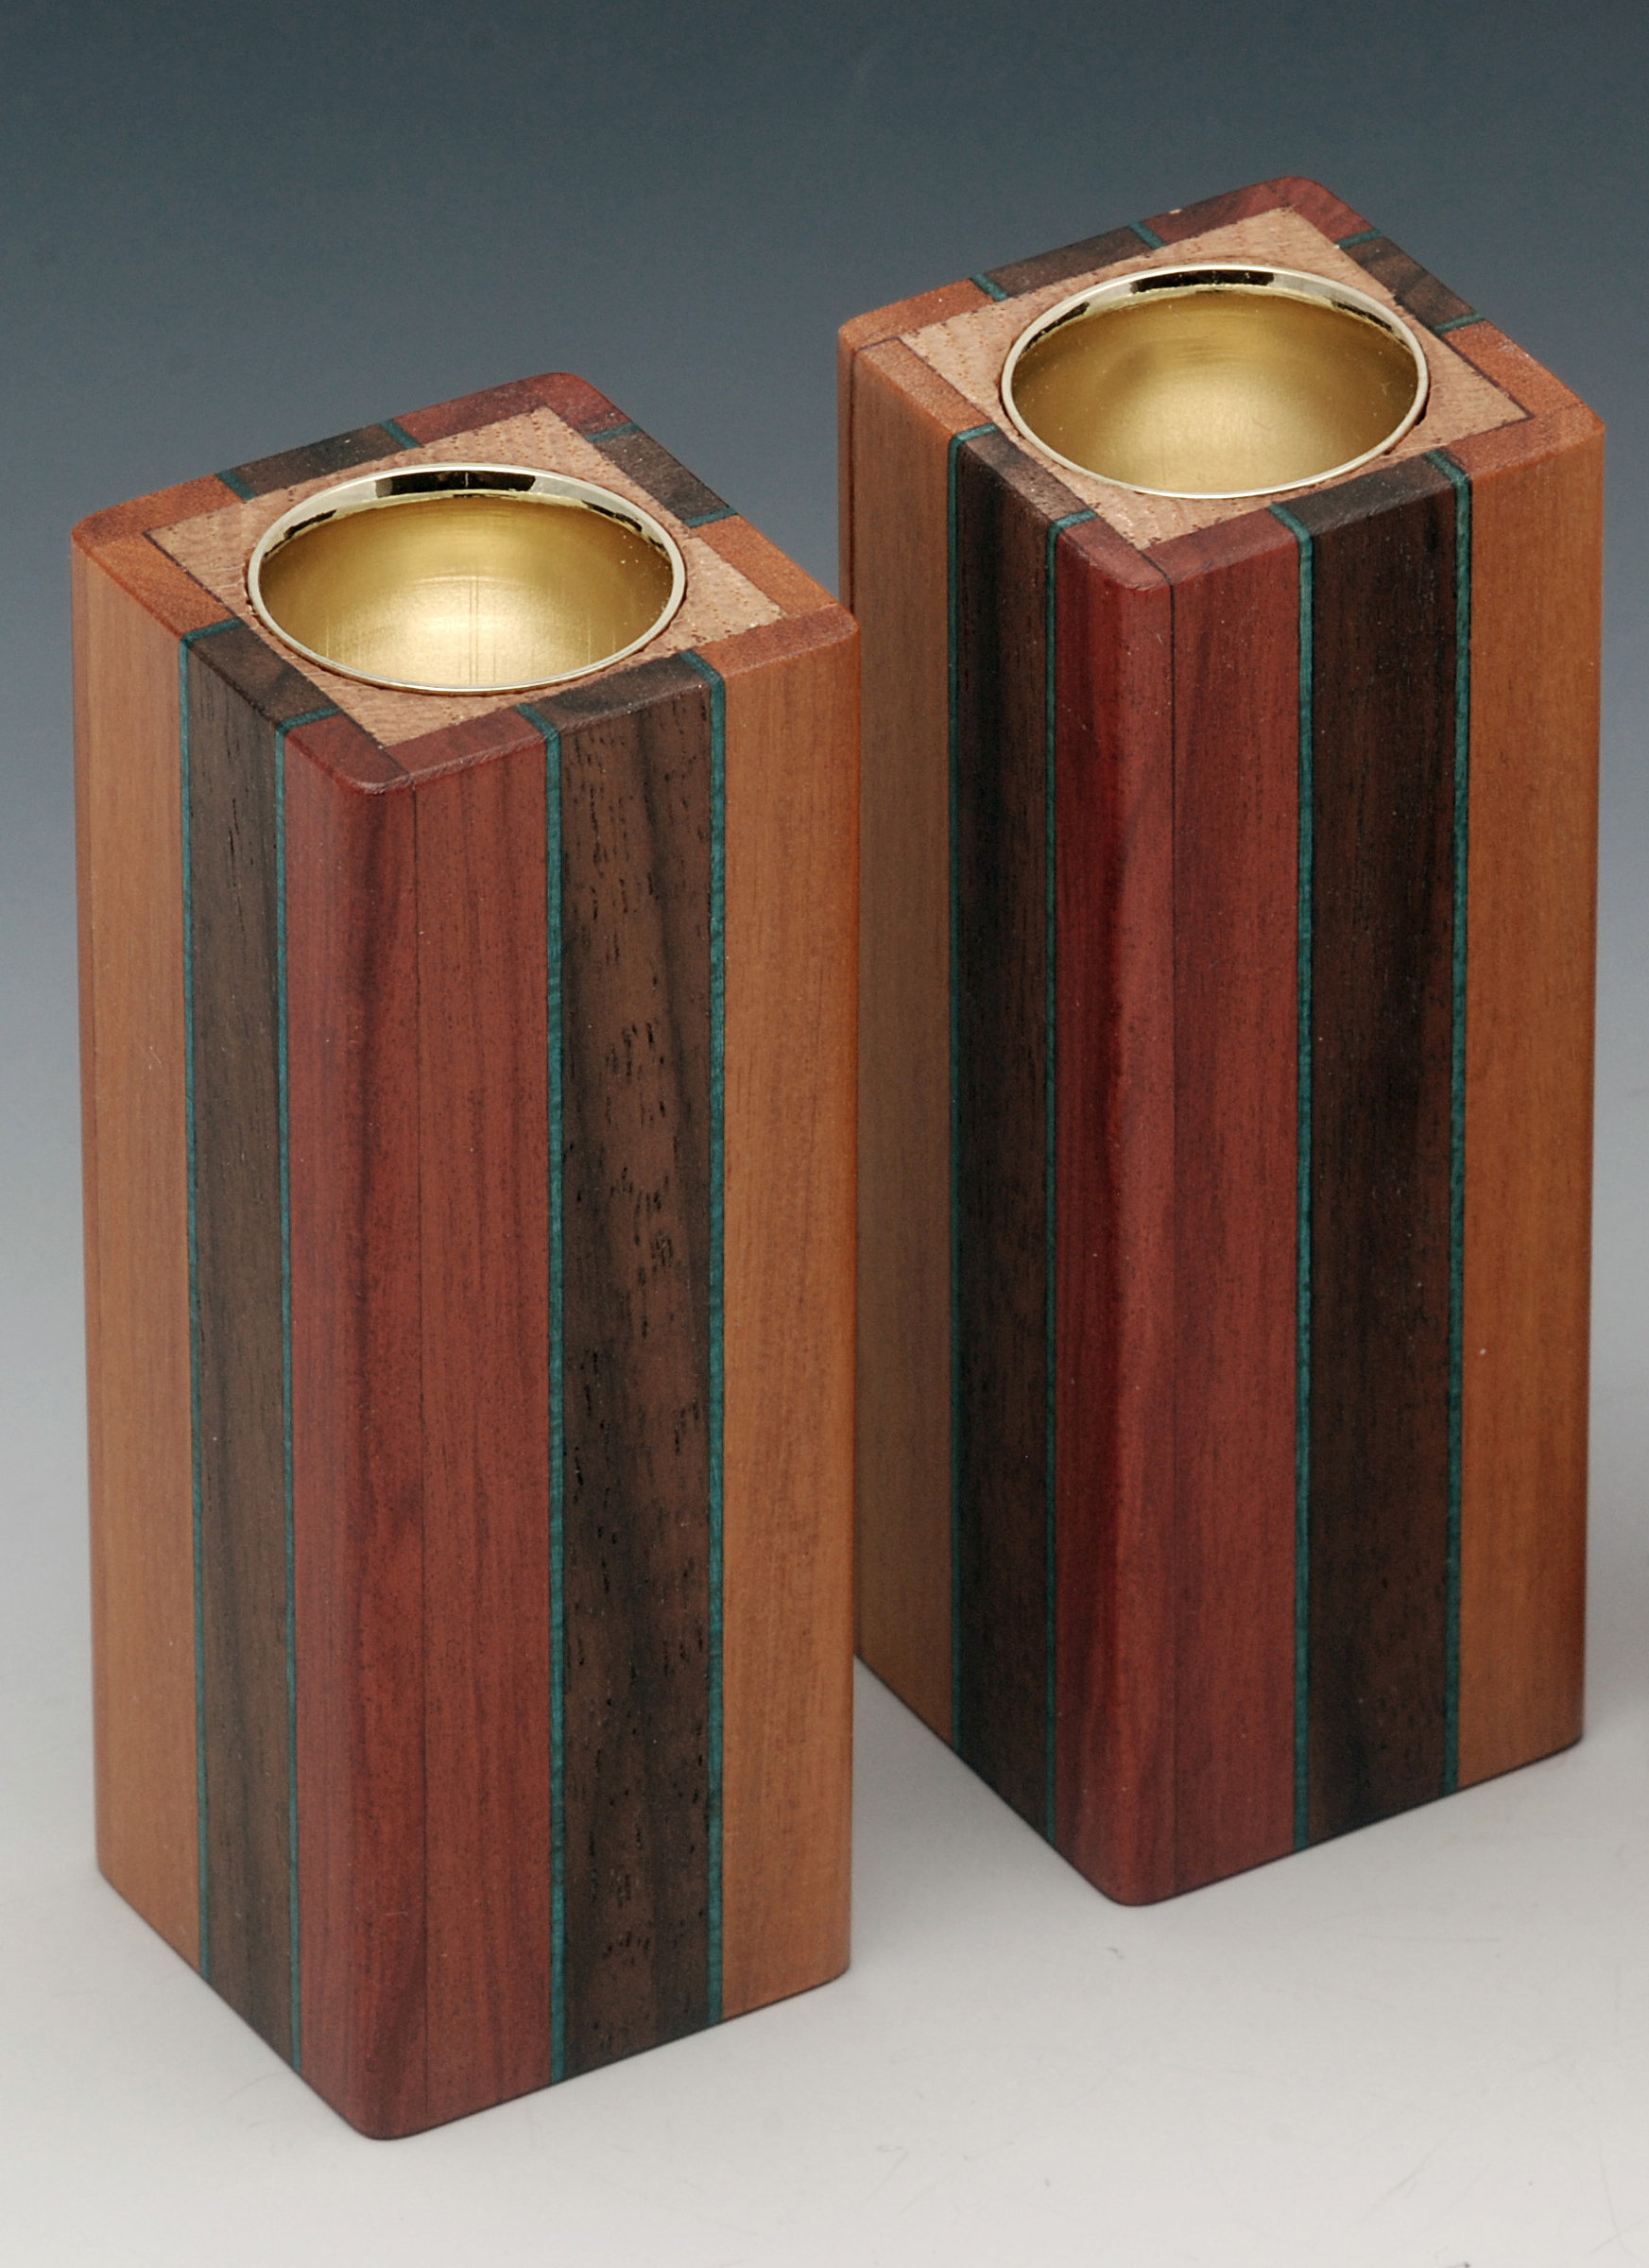 301 moved permanently Wood candle holders